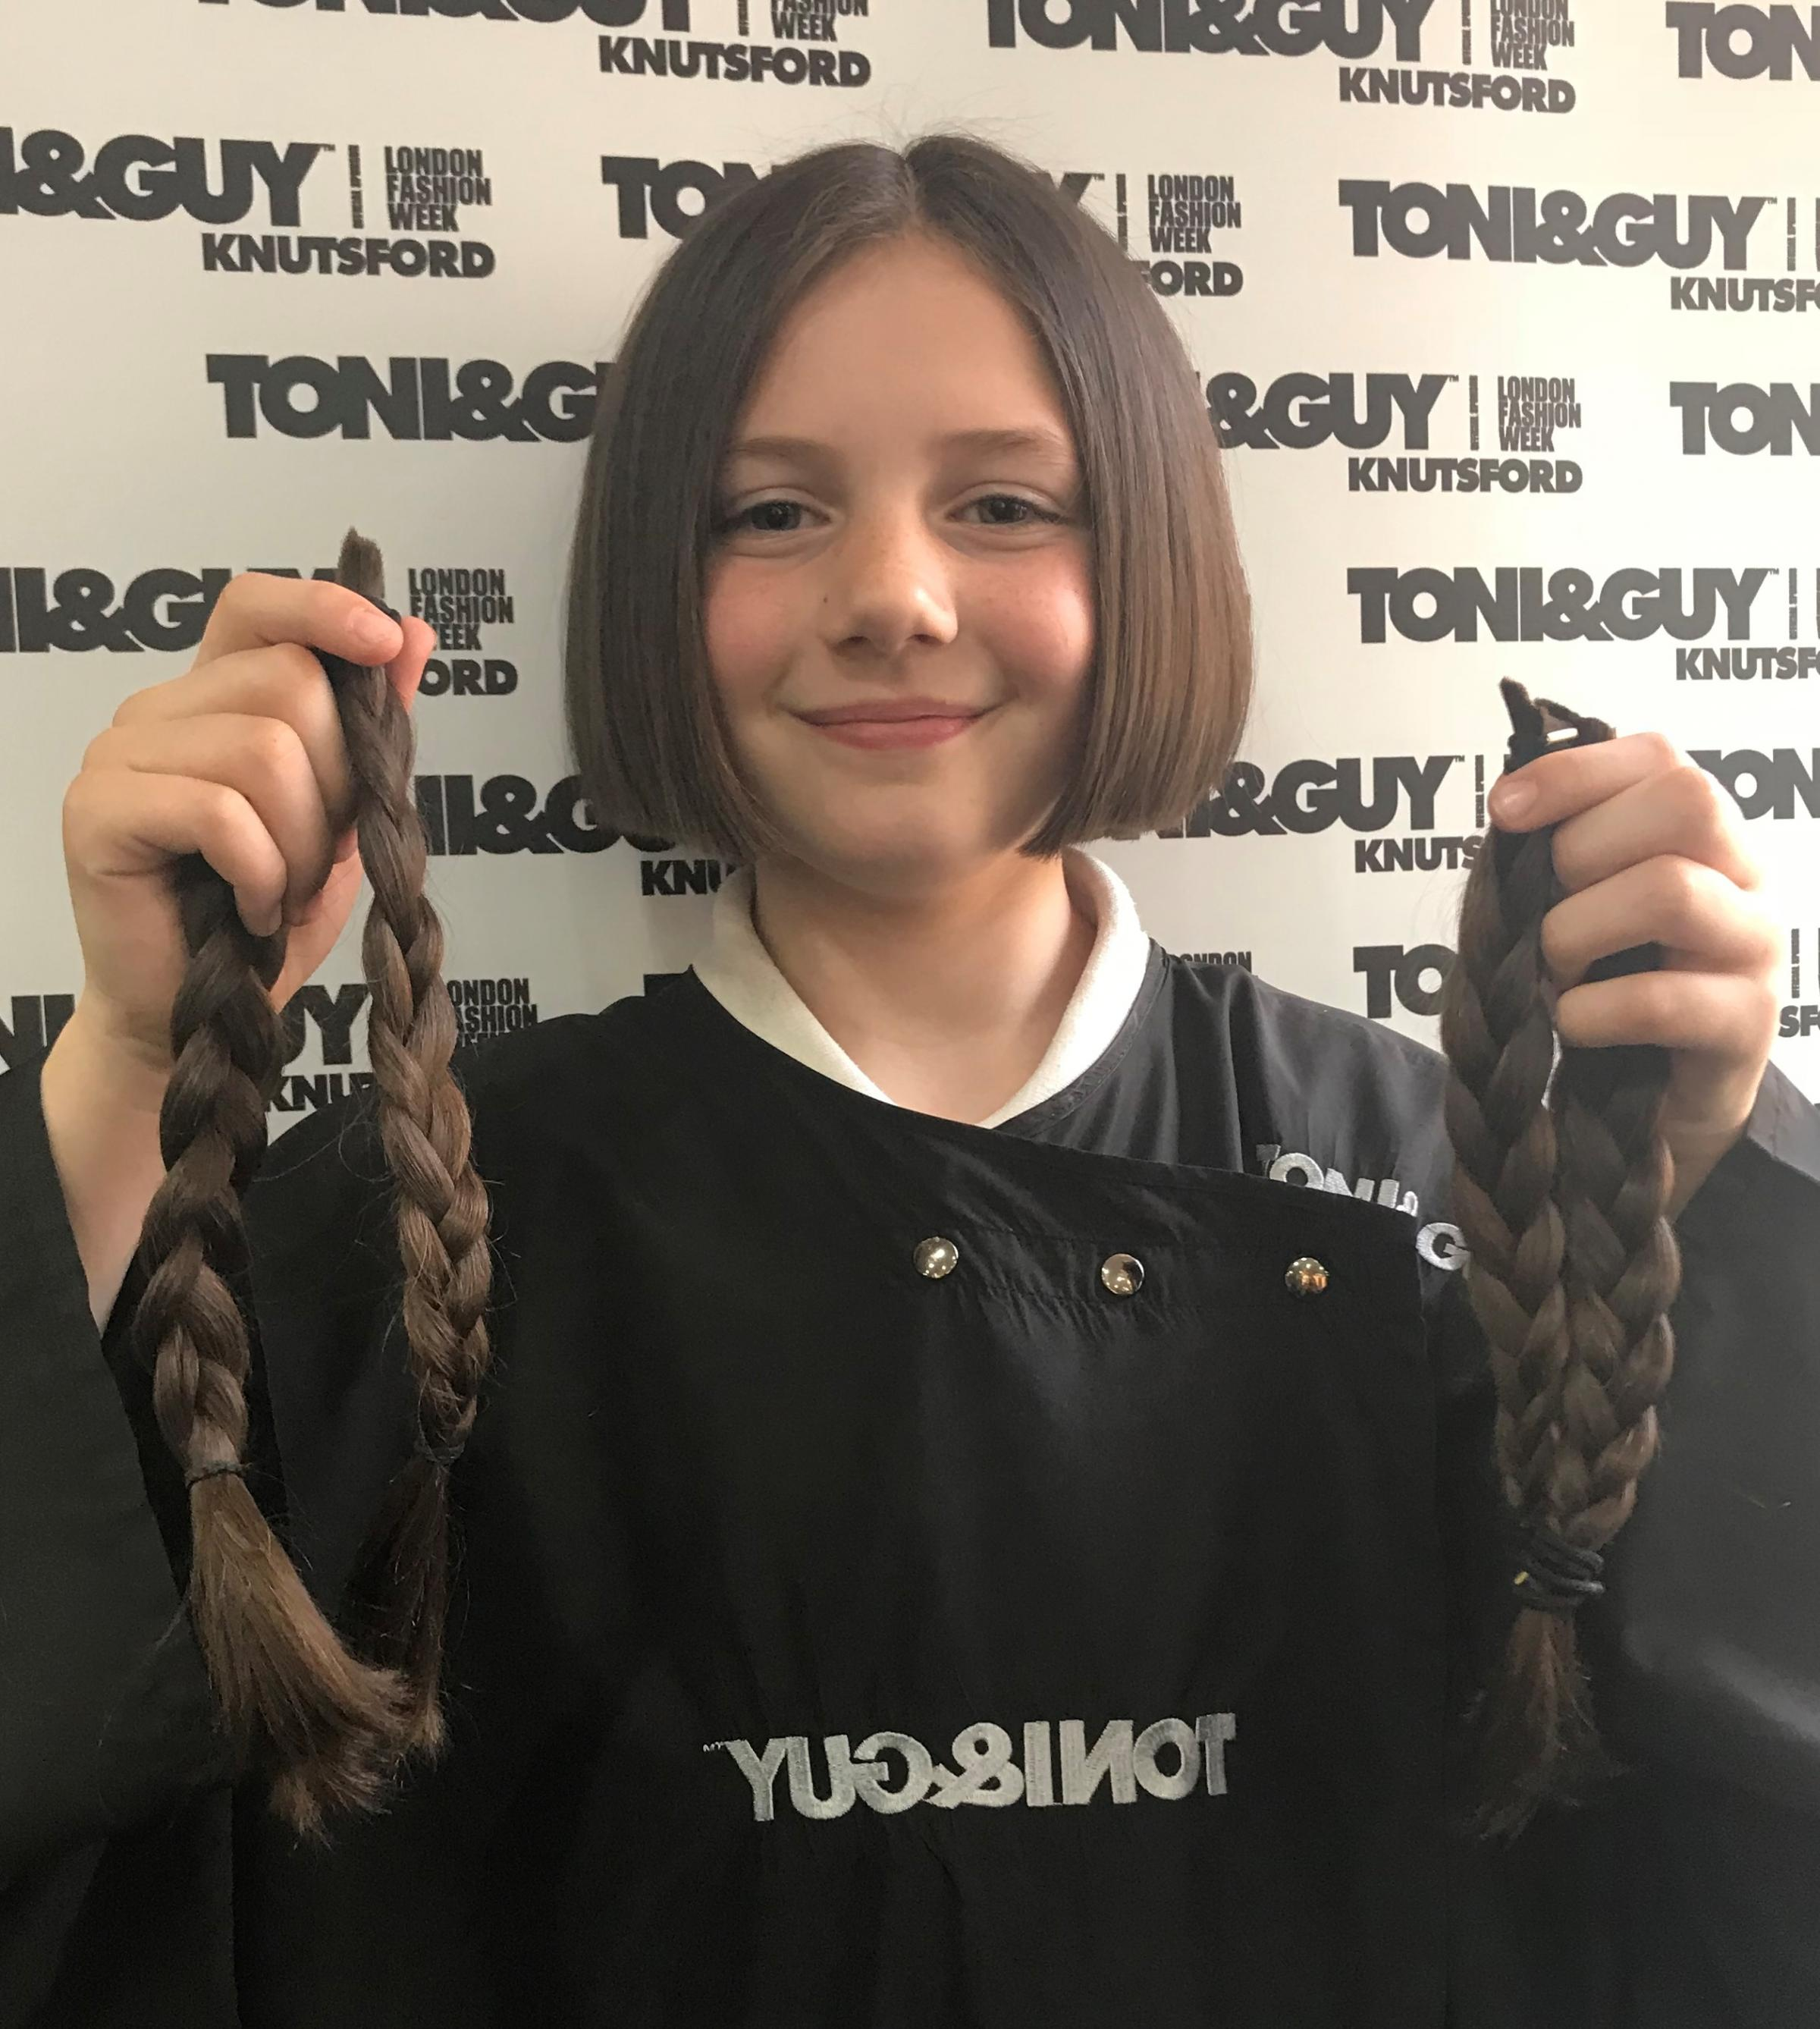 Lydia shows off her new hairstyle and donated locks